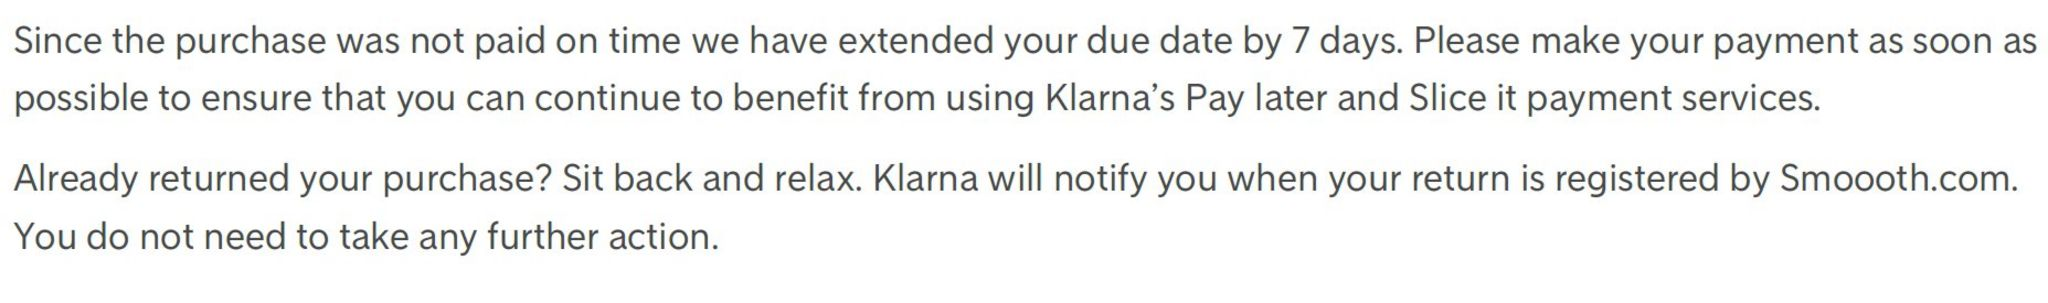 Klarna late payment notice letter